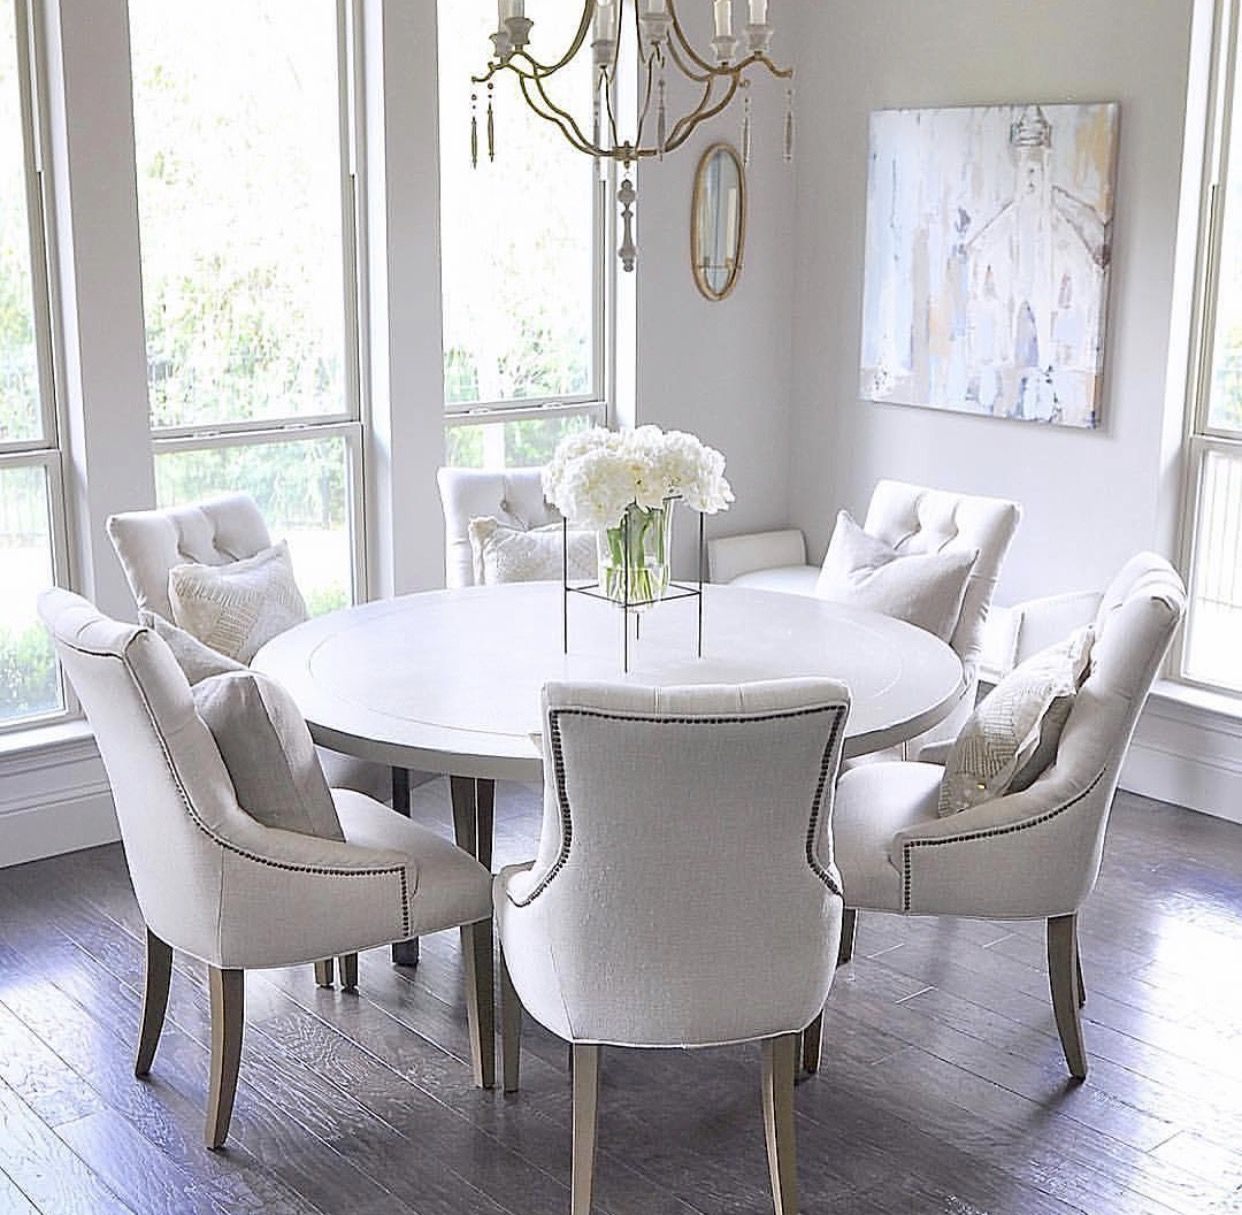 Pin By Jennifer George On Dining Room & Eat-in Kitchens